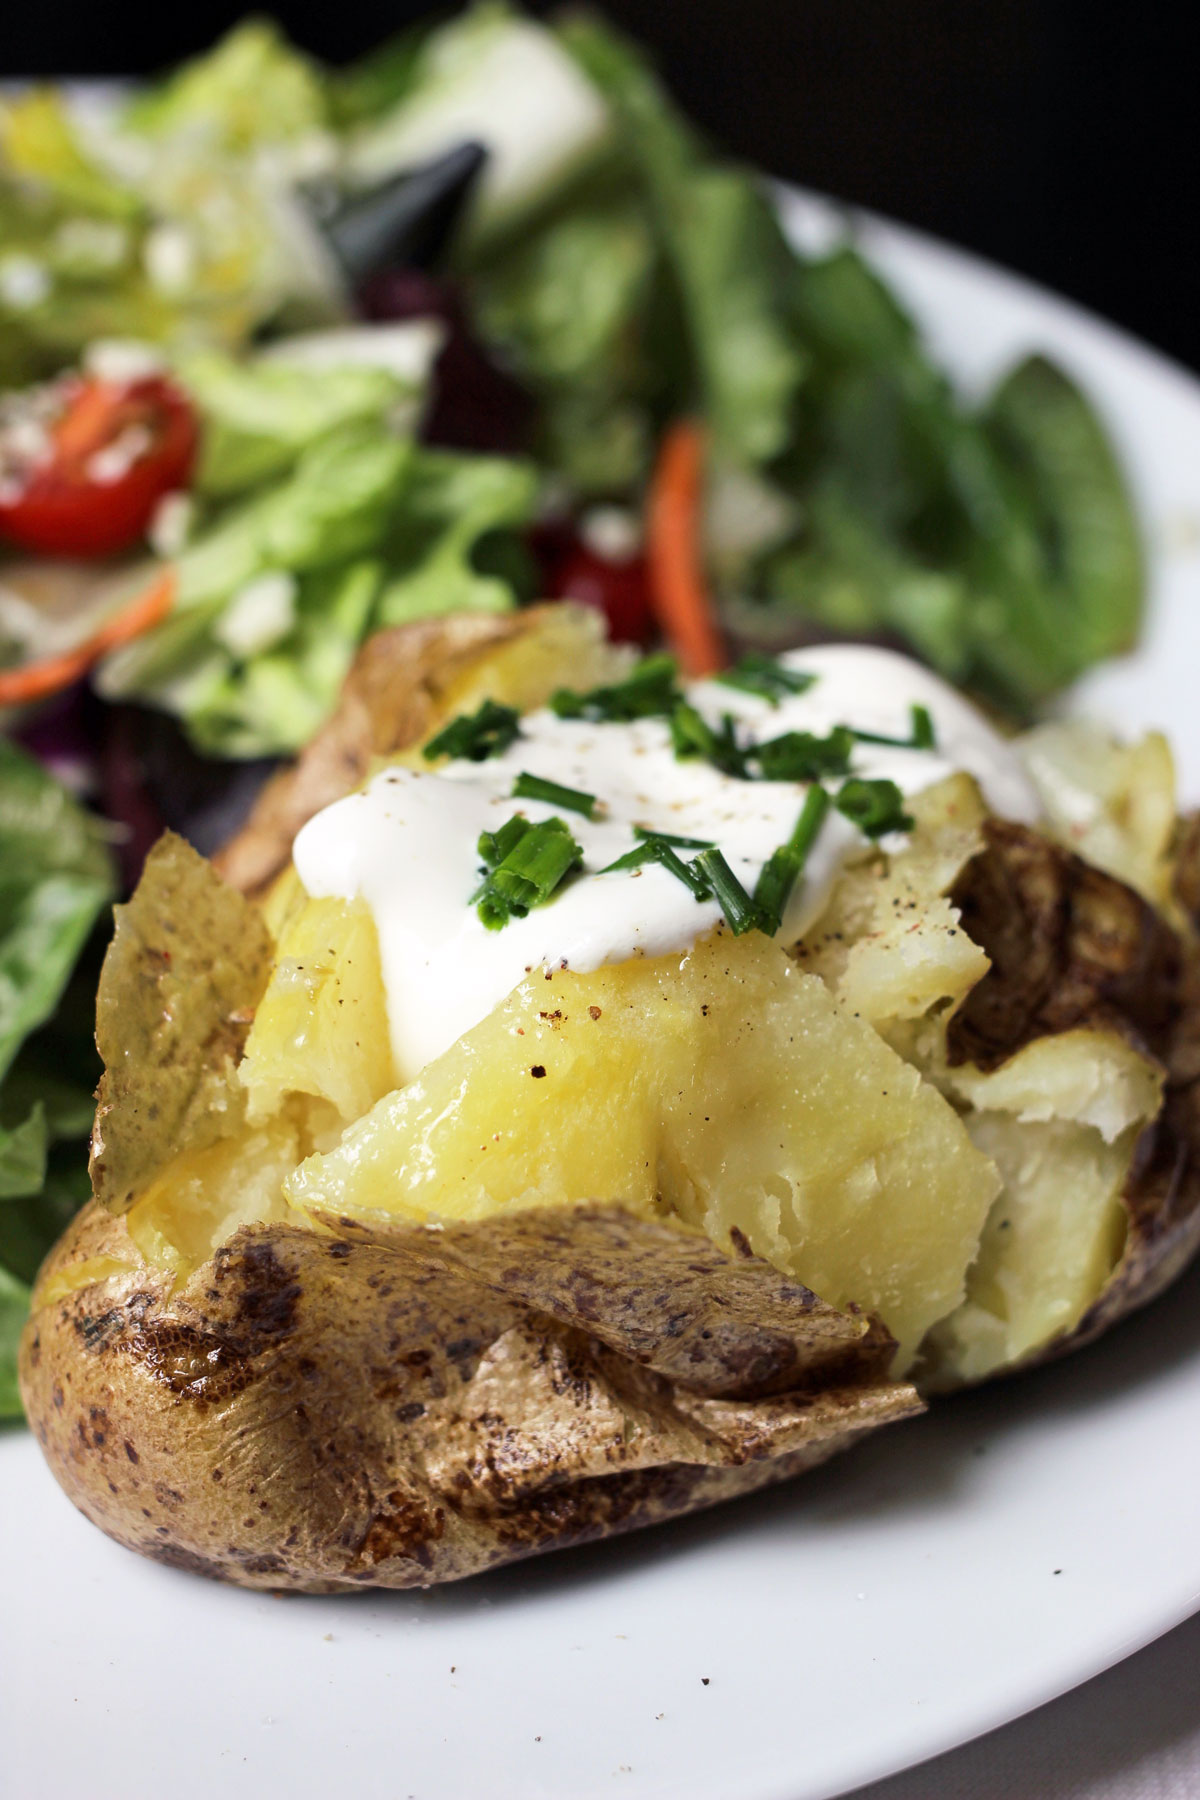 baked potato with sour cream on plate with salad